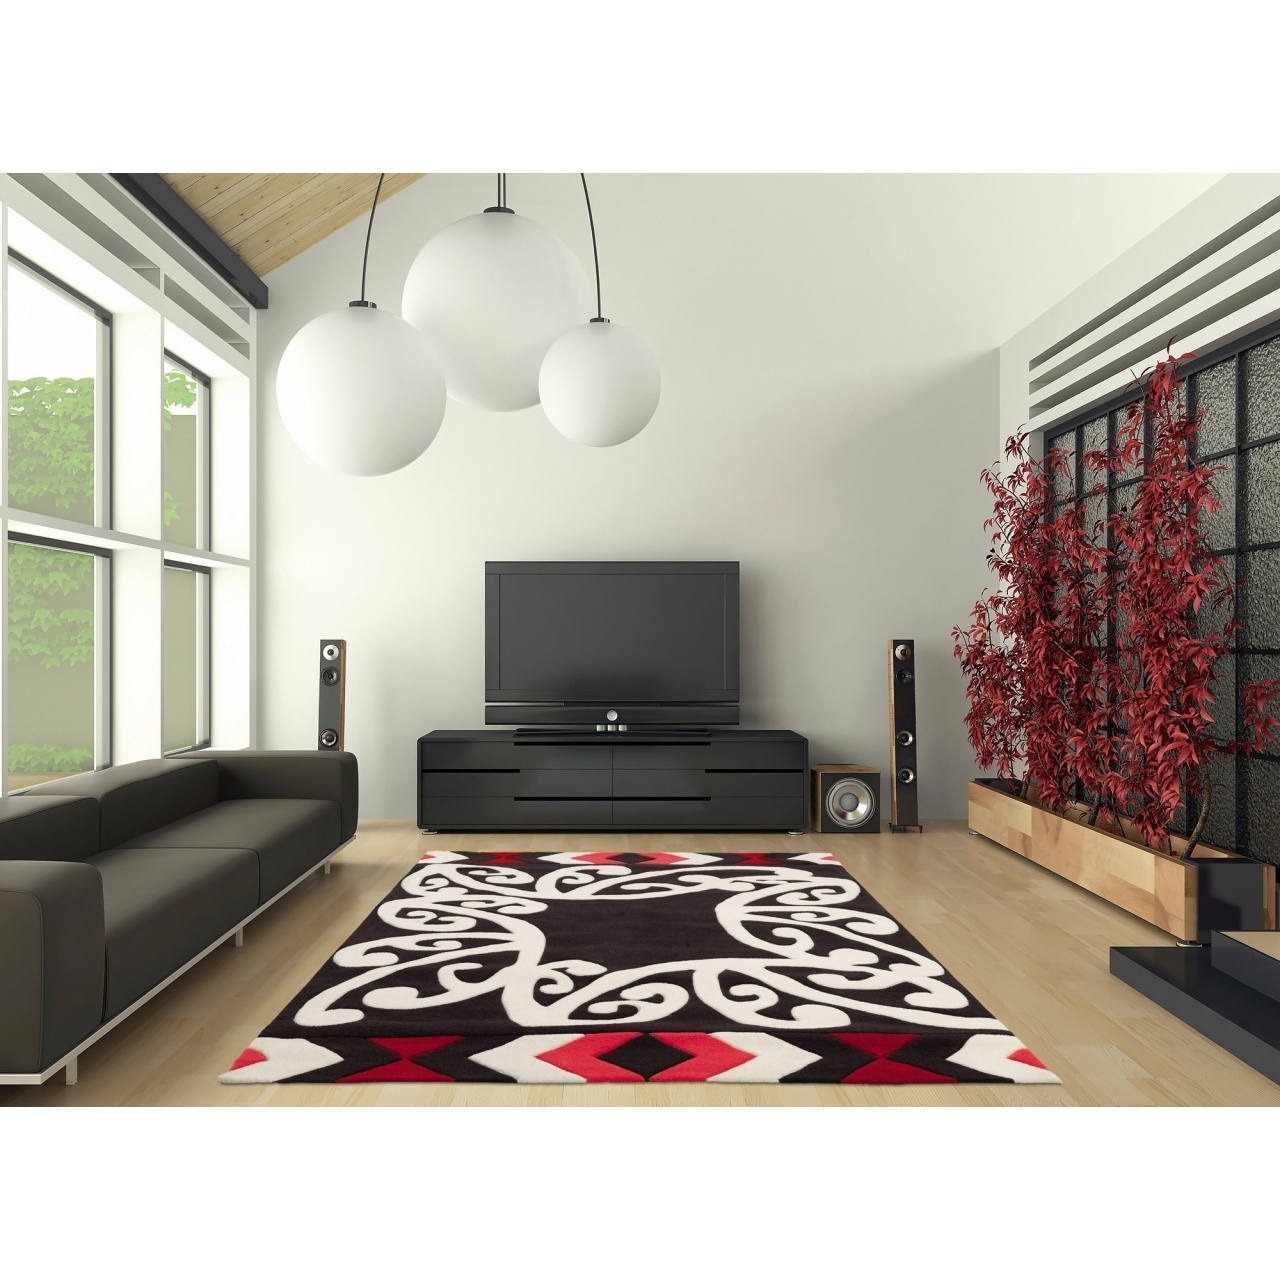 tapis de salon saint maclou fabulous tapis saint maclou. Black Bedroom Furniture Sets. Home Design Ideas